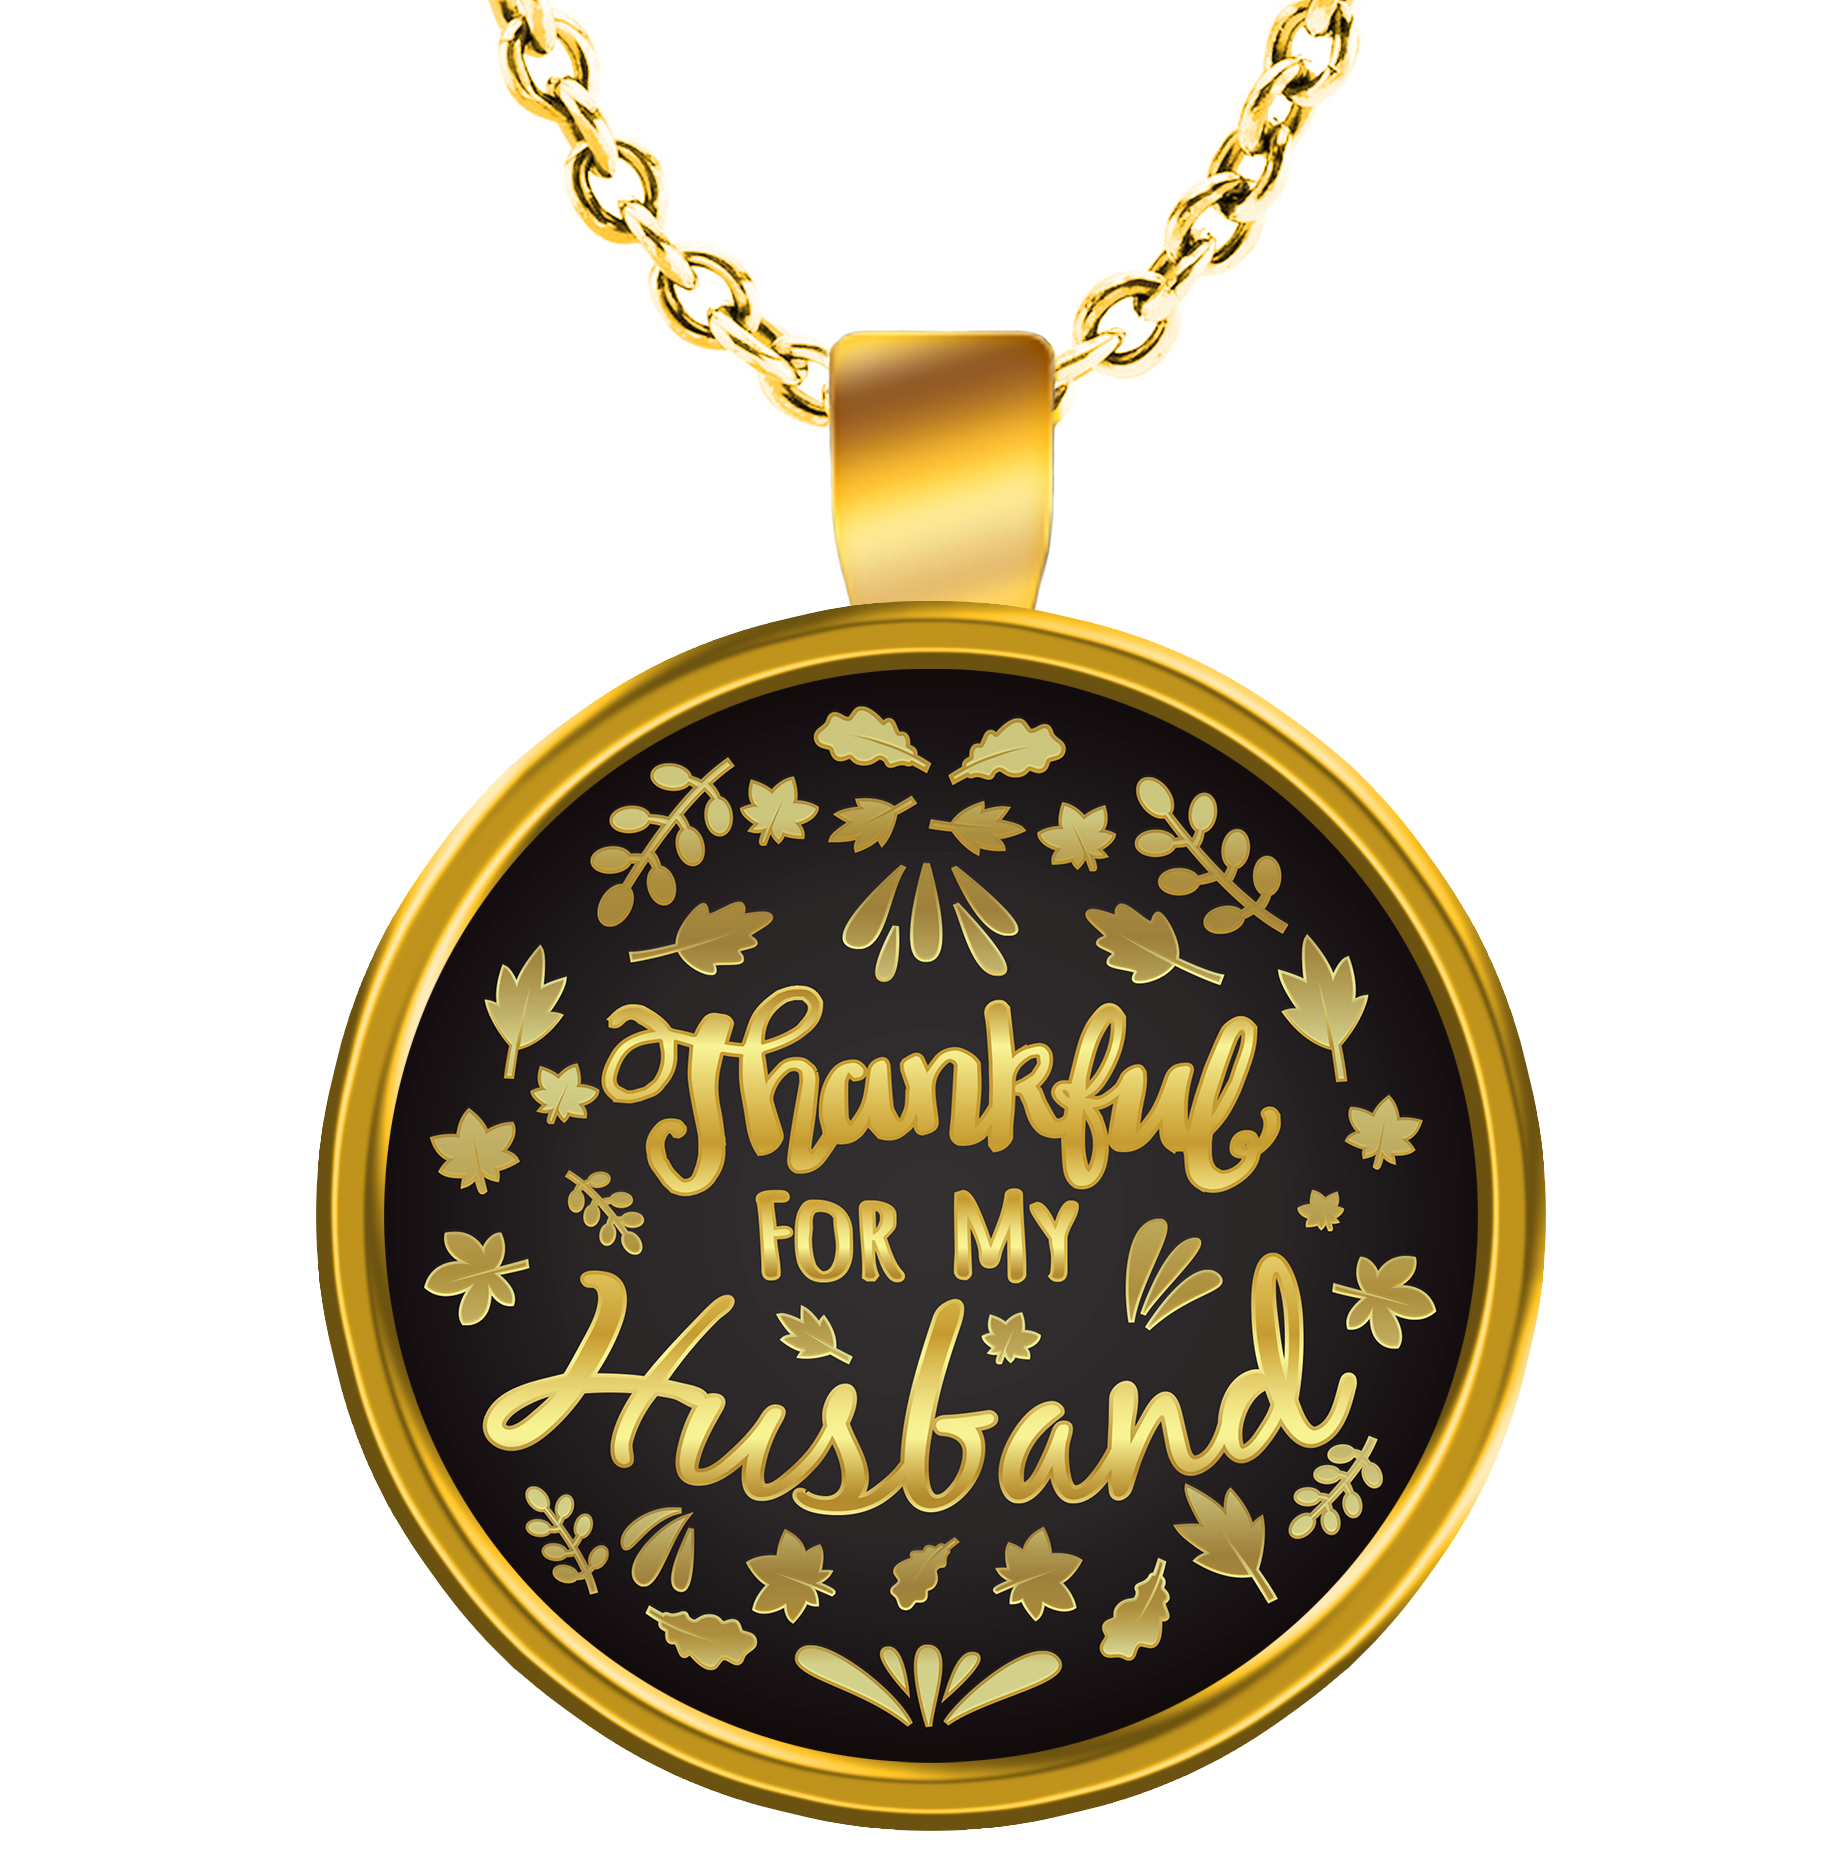 necklace for my me to with wife asset life products transformation sharing and thank you husband your